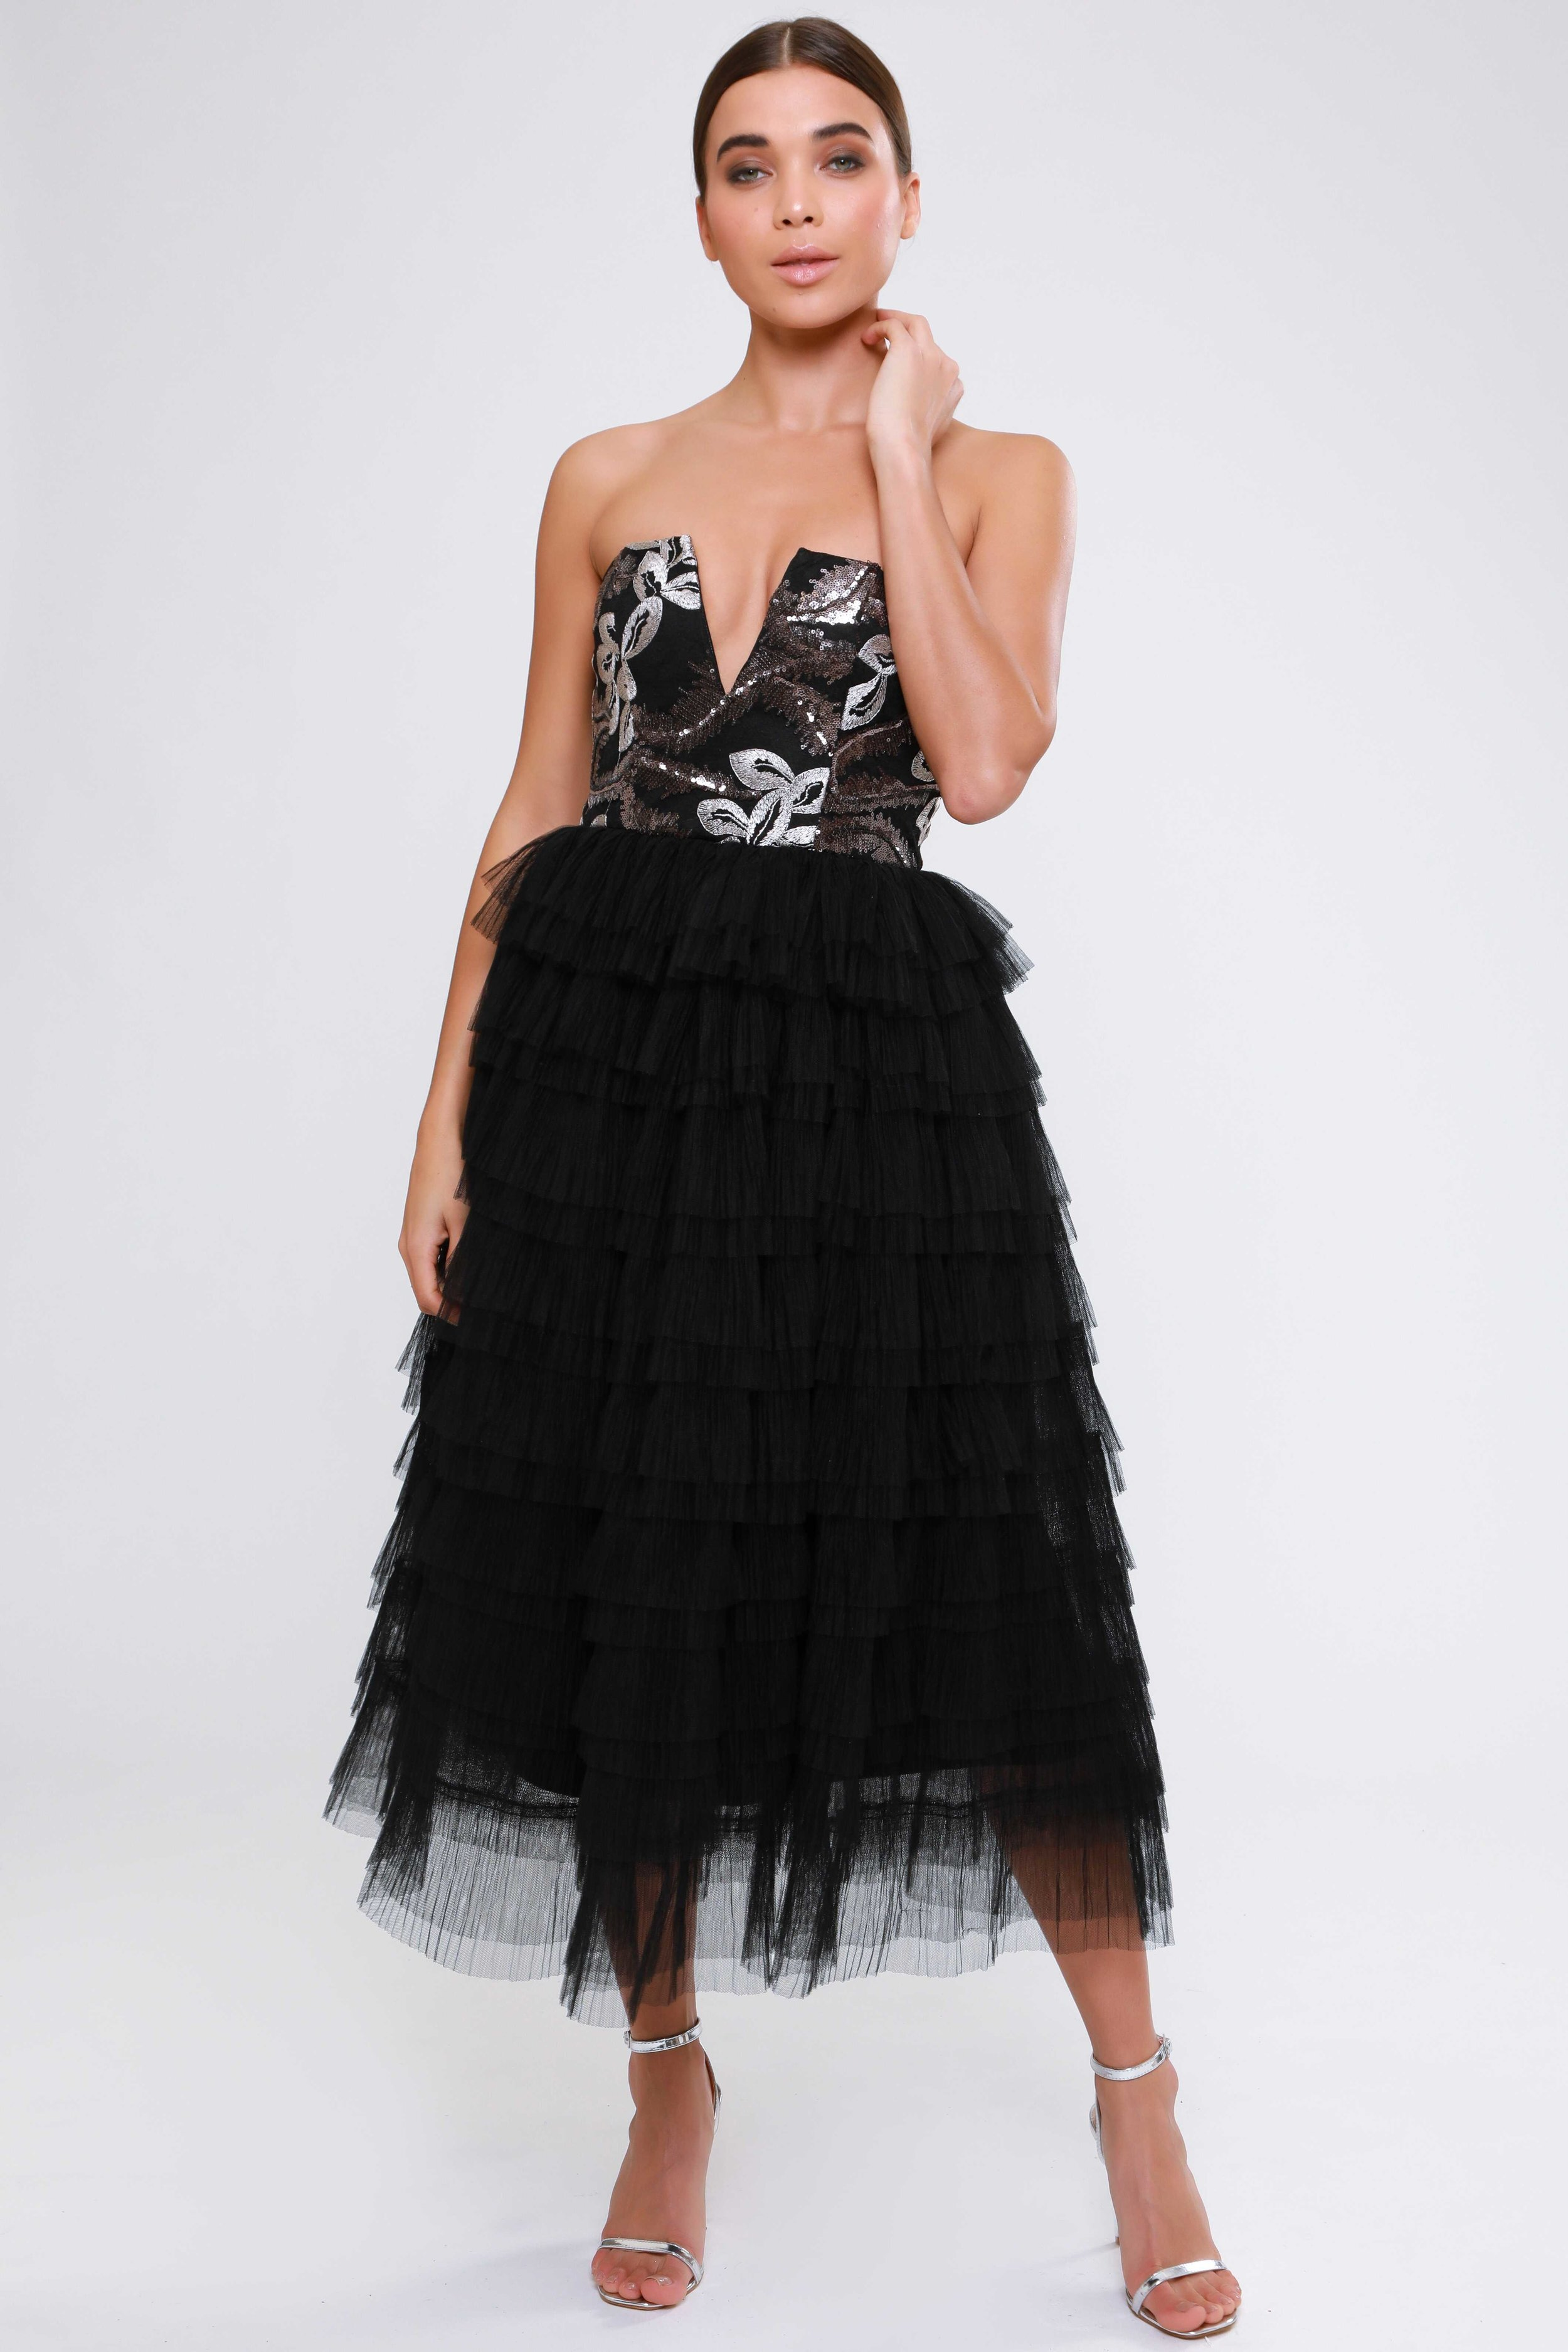 Sequin Embroidered  Mesh Tutu Dress   £79.00